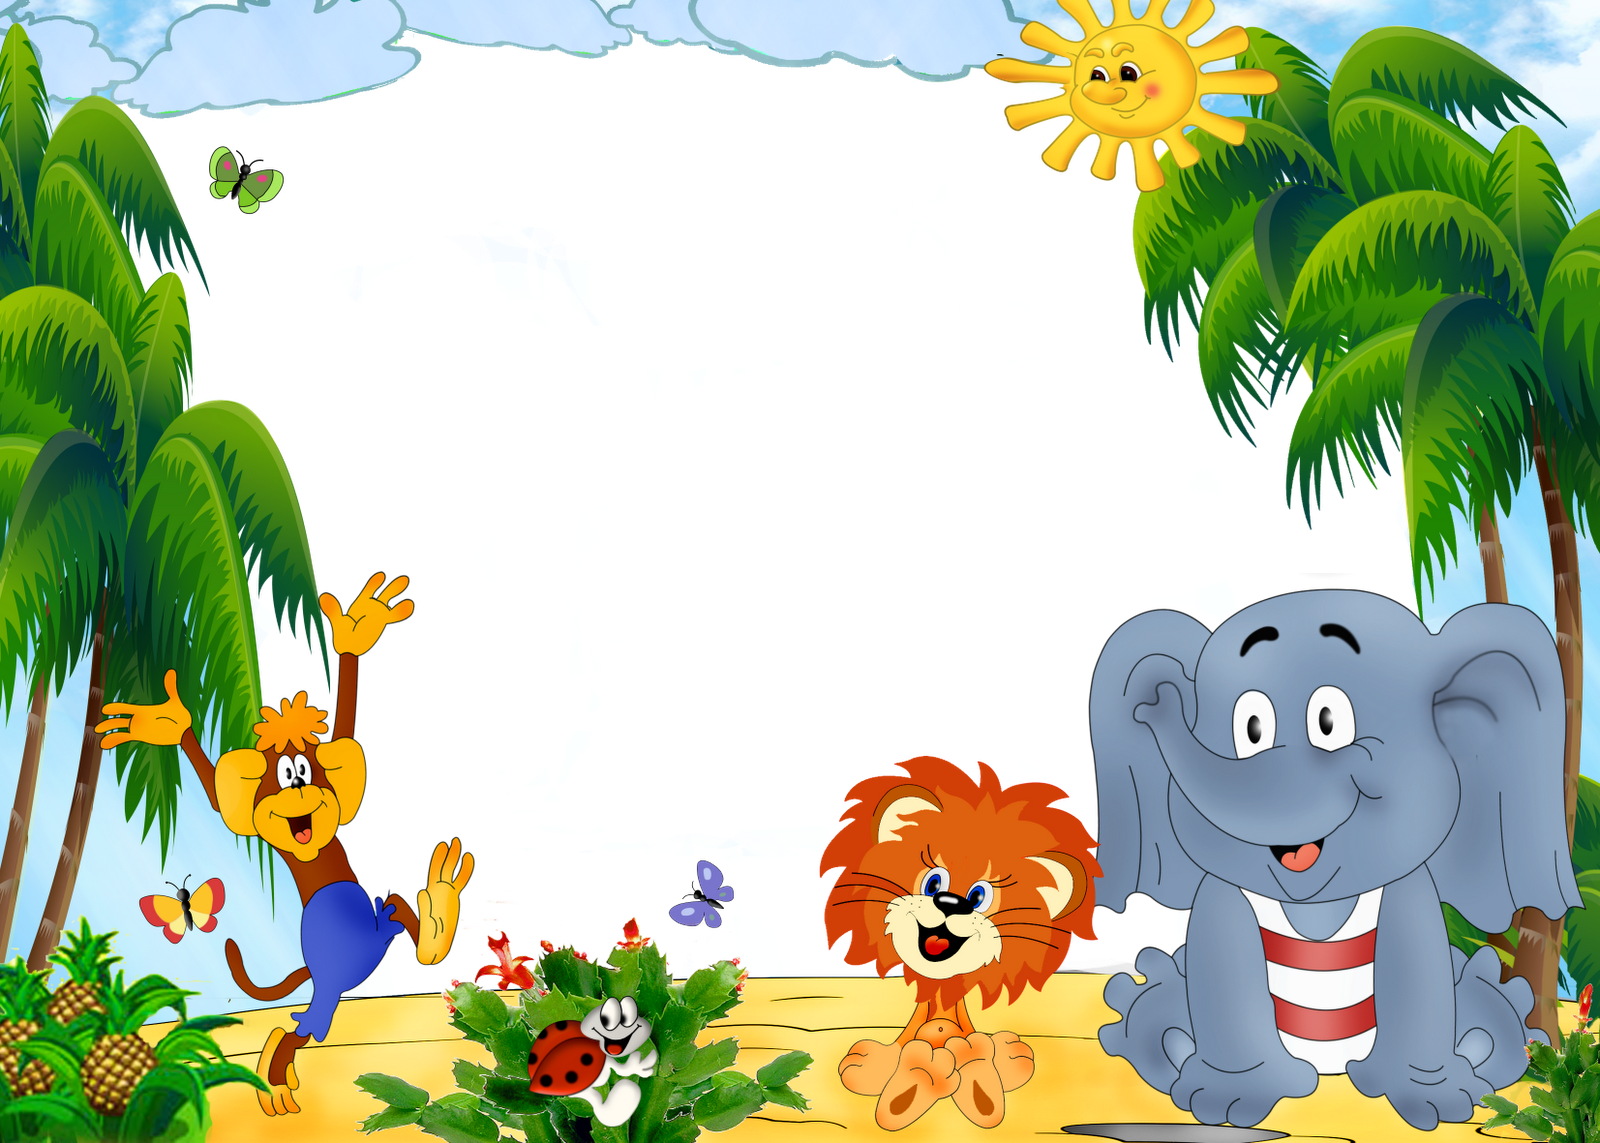 Png backgrounds for kids. Photoshop frame hd wallpapers